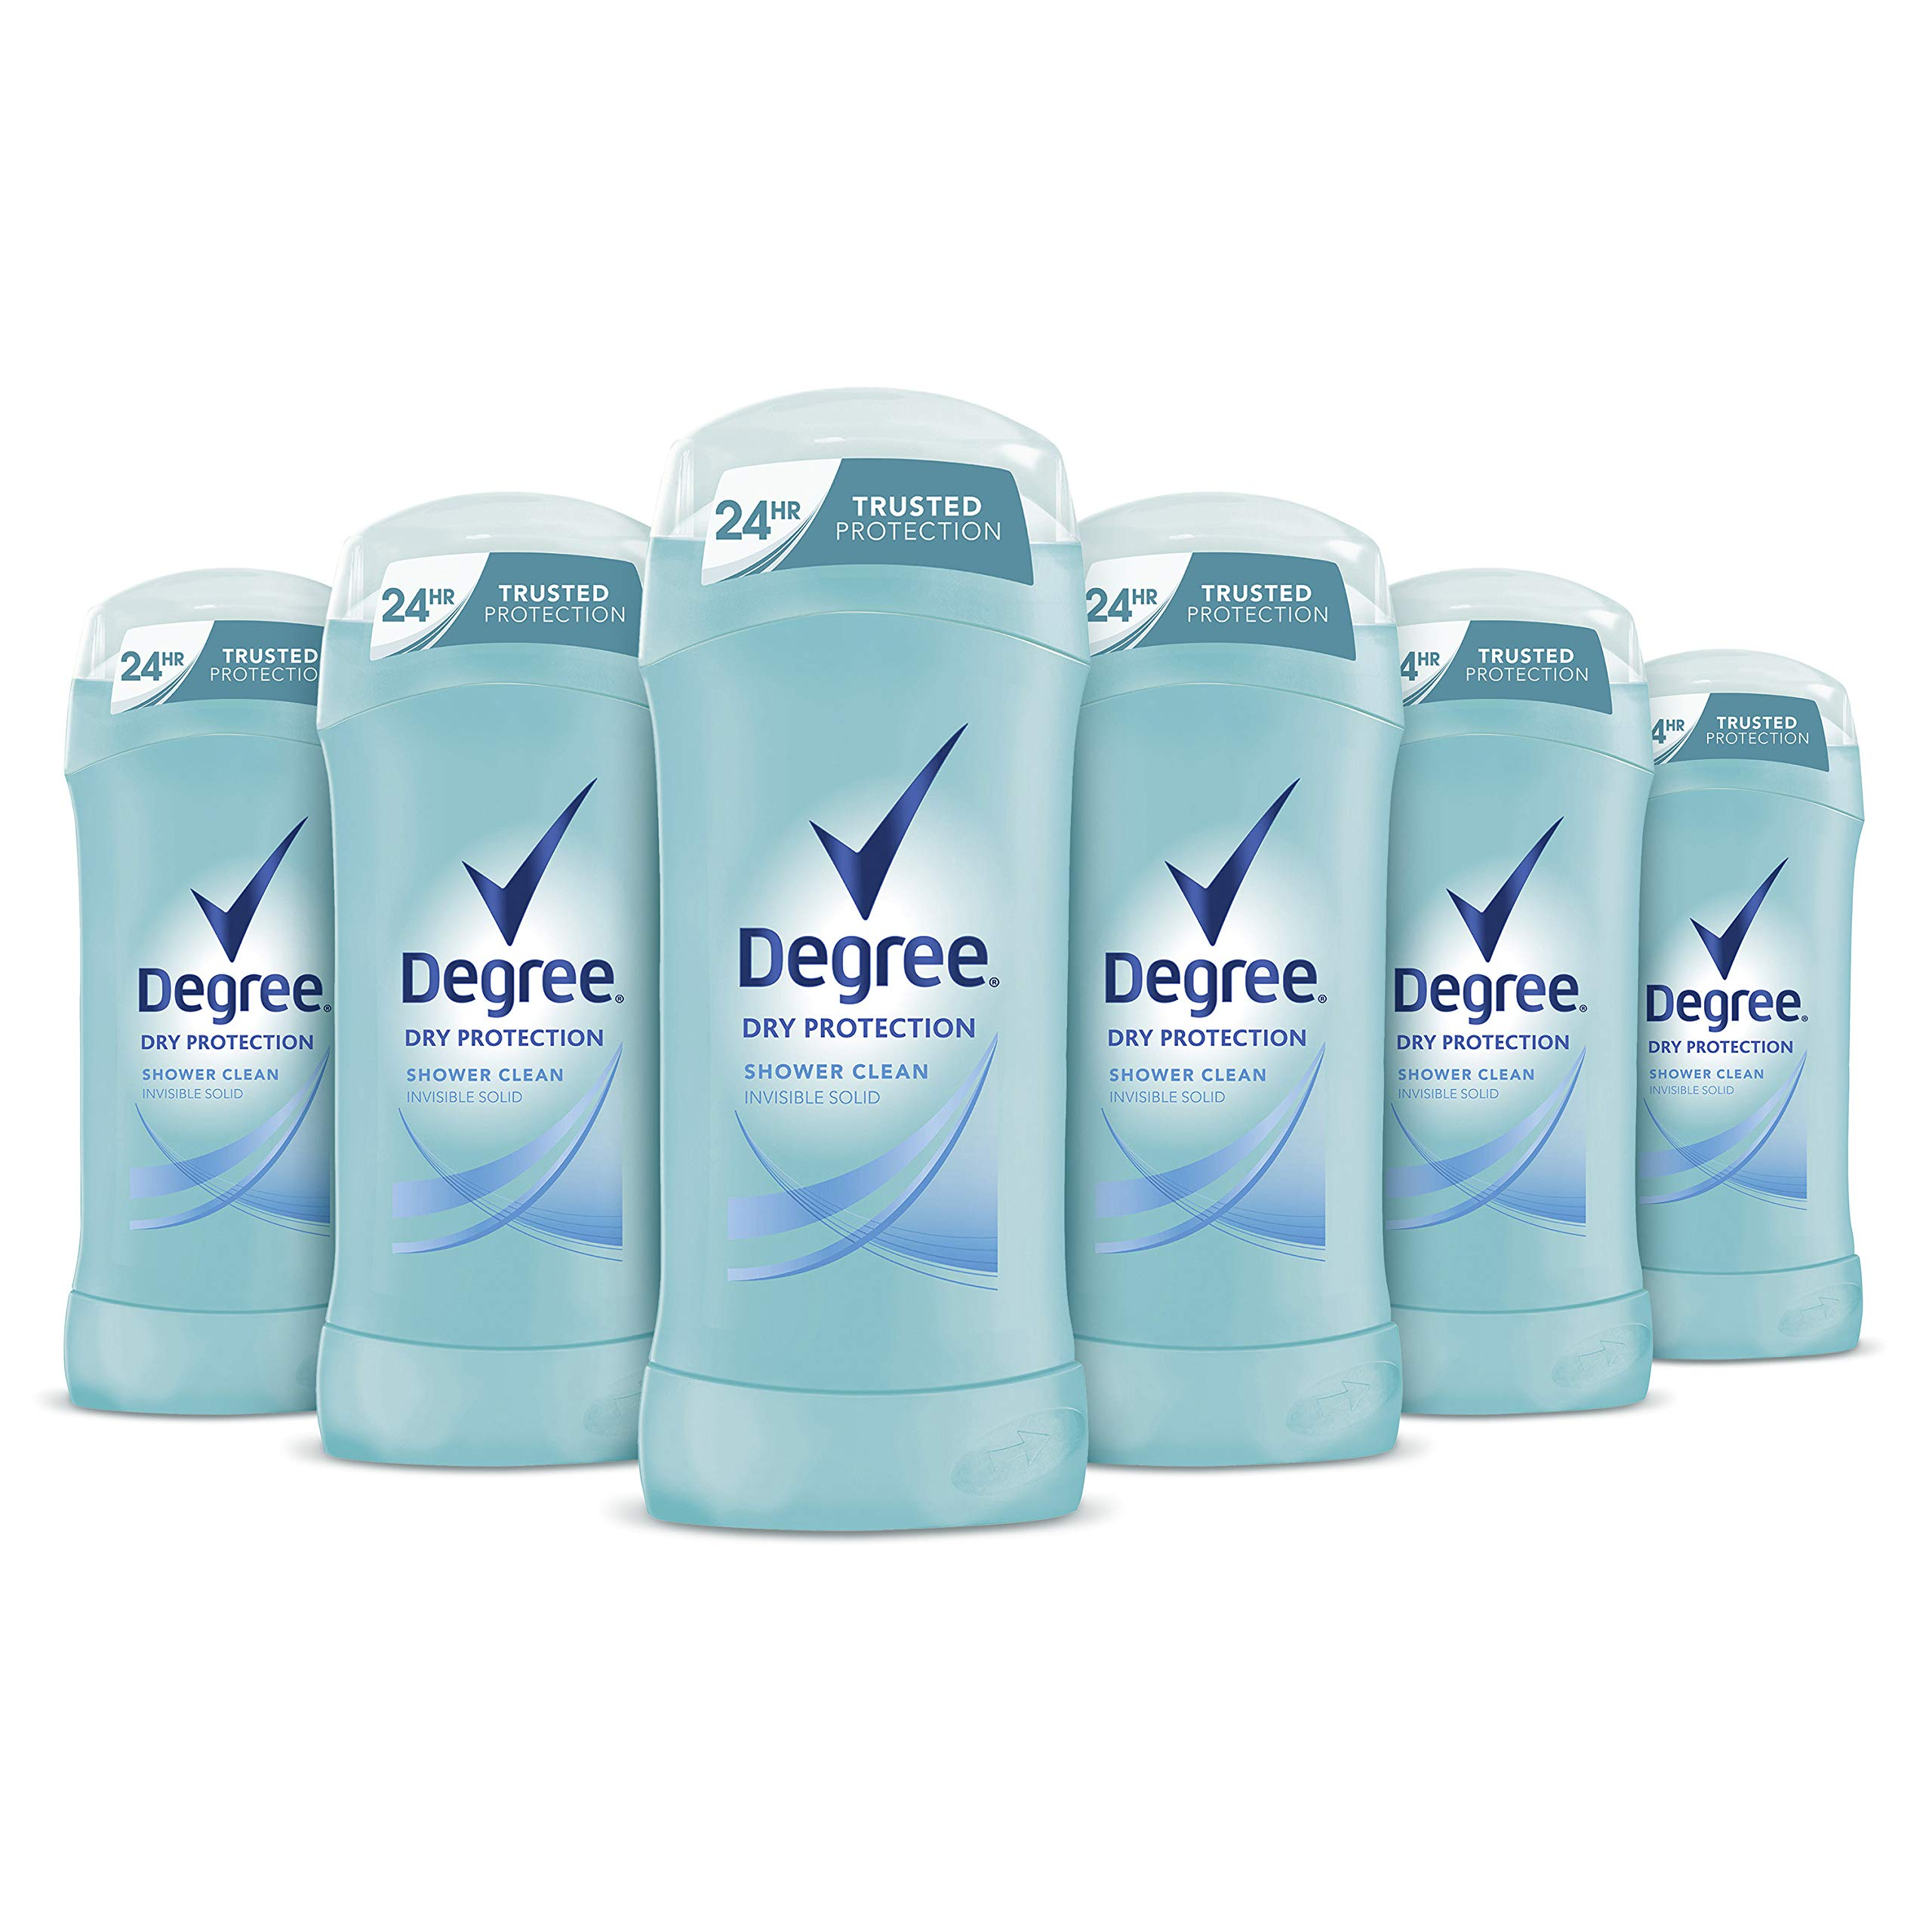 Antiperspirant Deodorant 24 Hour Dry Protection Shower Clean Deodorant for Women 2.6 oz, 6 Count